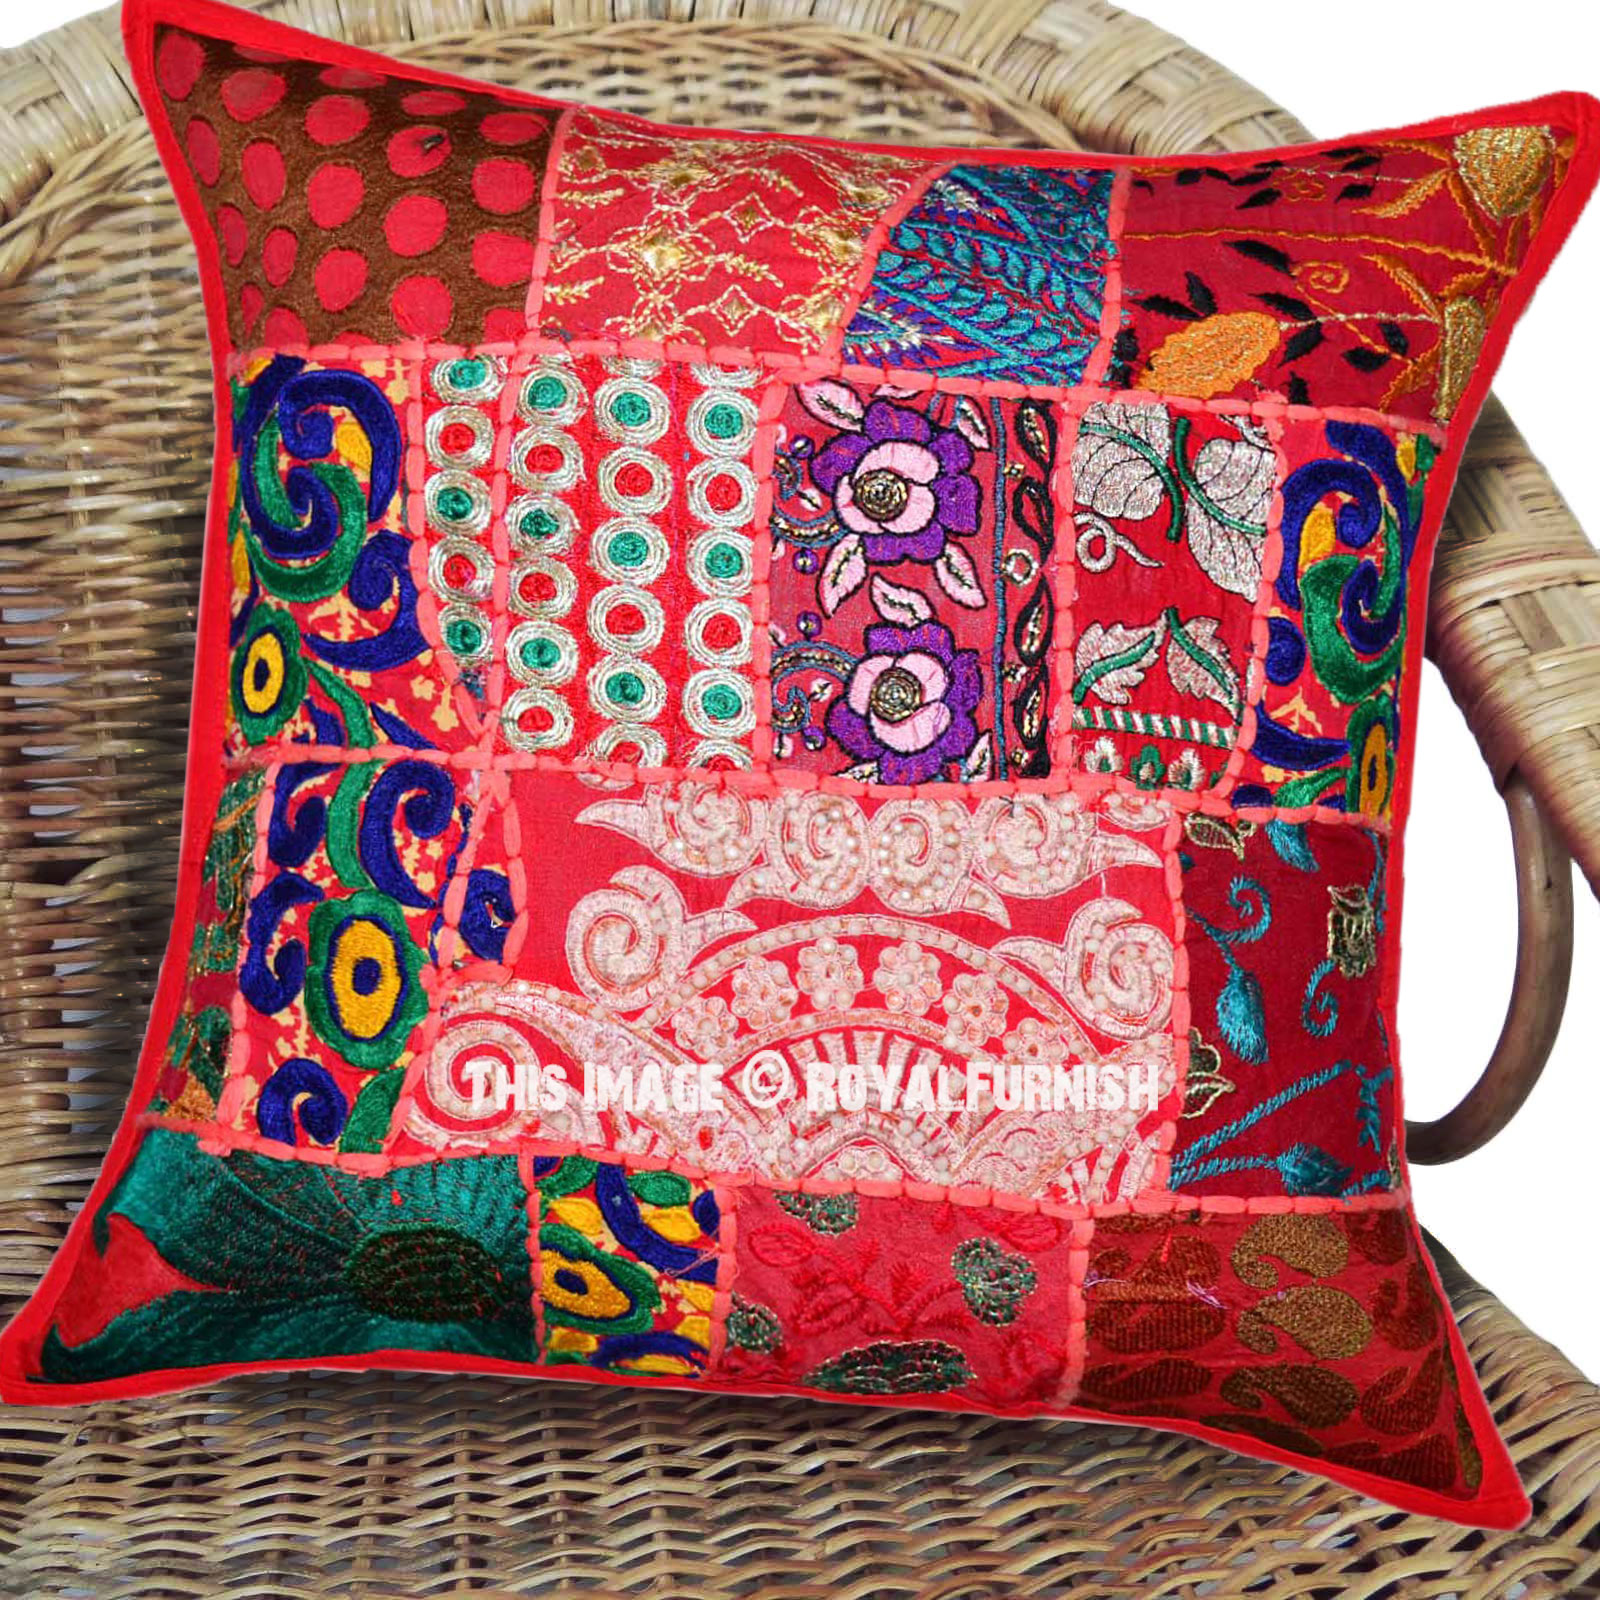 40x40 vibrant red boho patchwork accent square throw pillow cover - What is a throw pillow ...